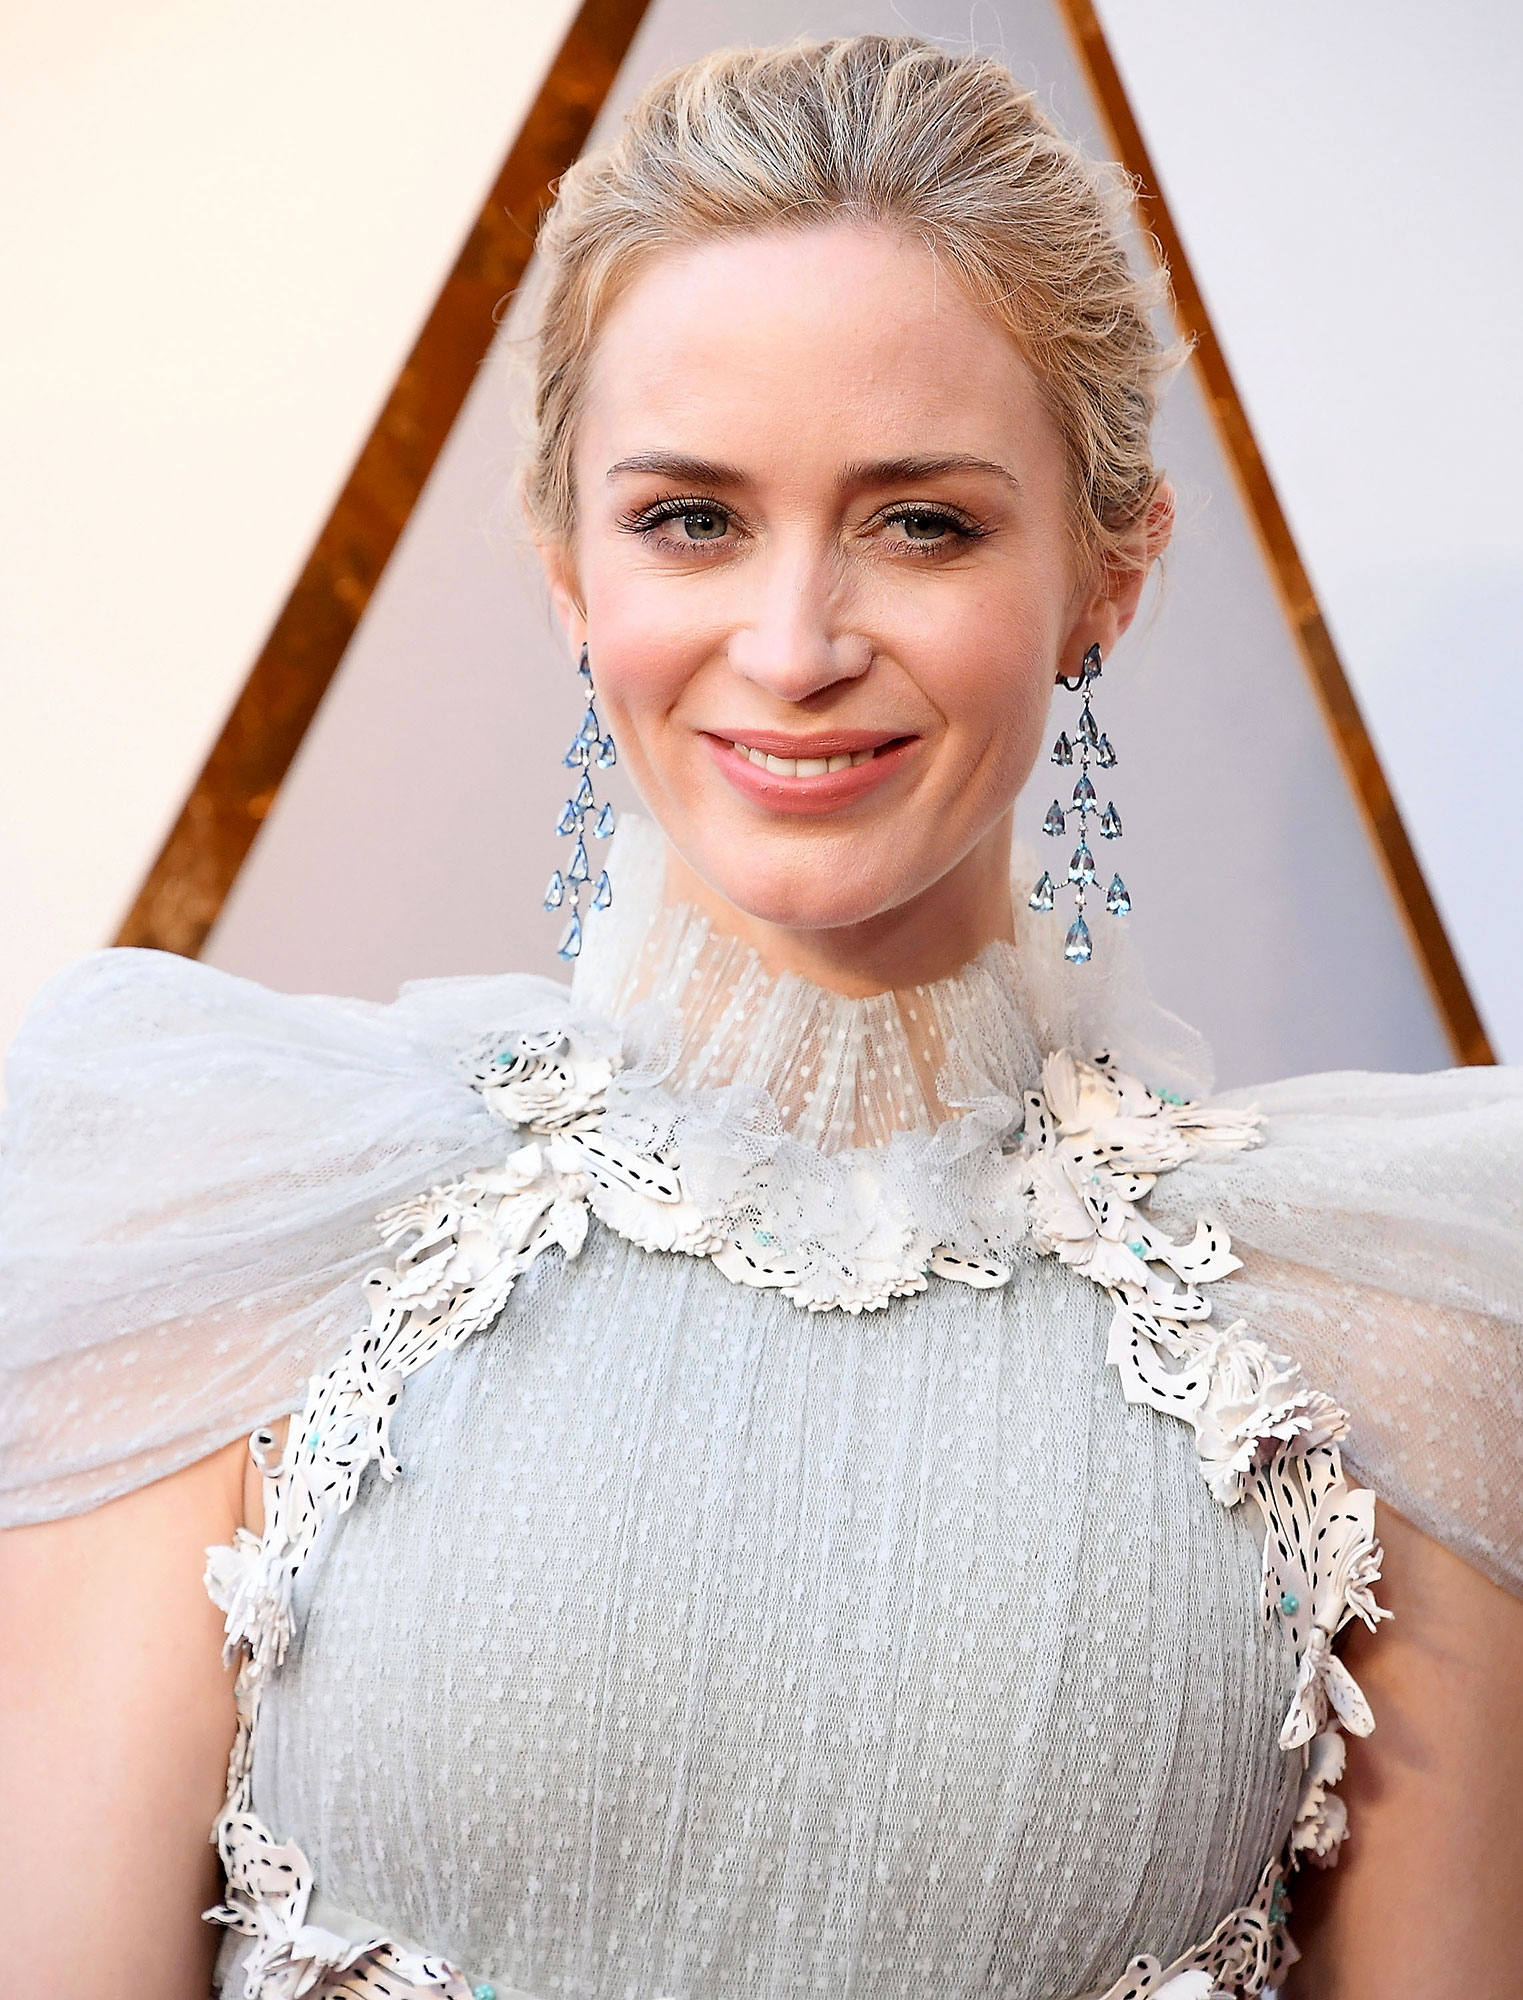 Emily Blunt - Stars Who Have Never Won Oscars - Spoonfuls of sugar, sure, but an Oscar?